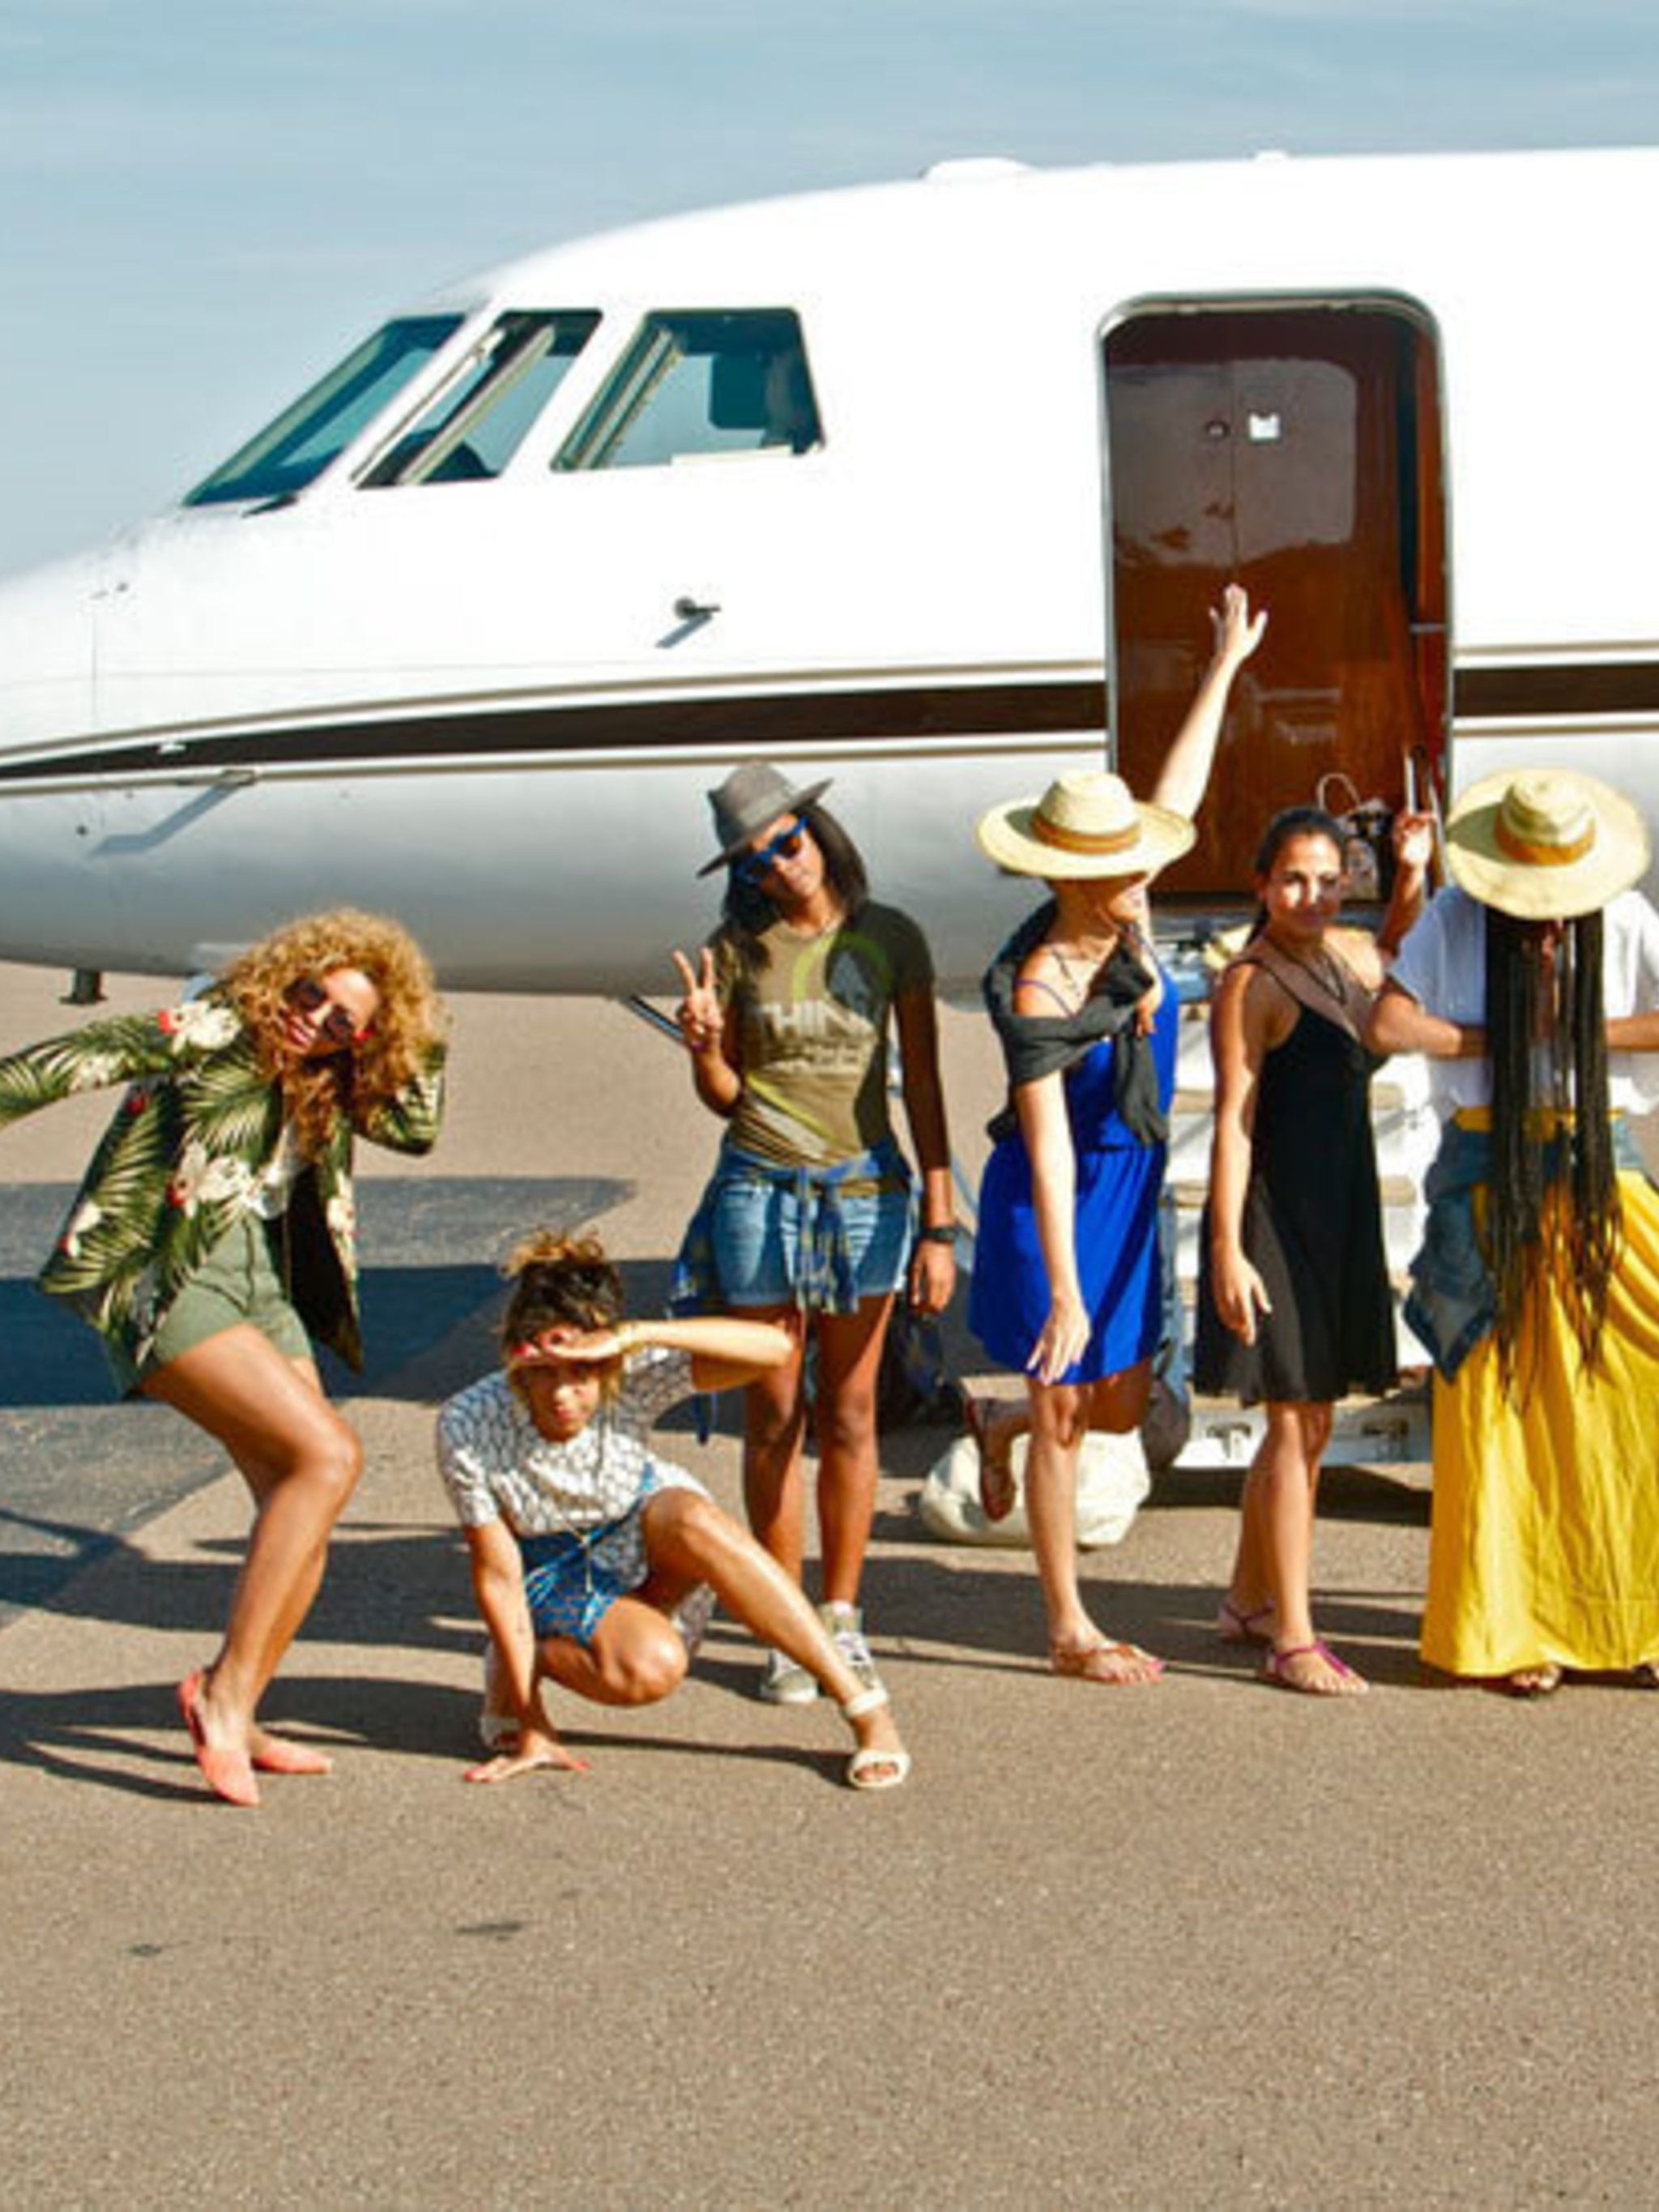 <p>Beyonce and her friends posing in front of a private jet</p>